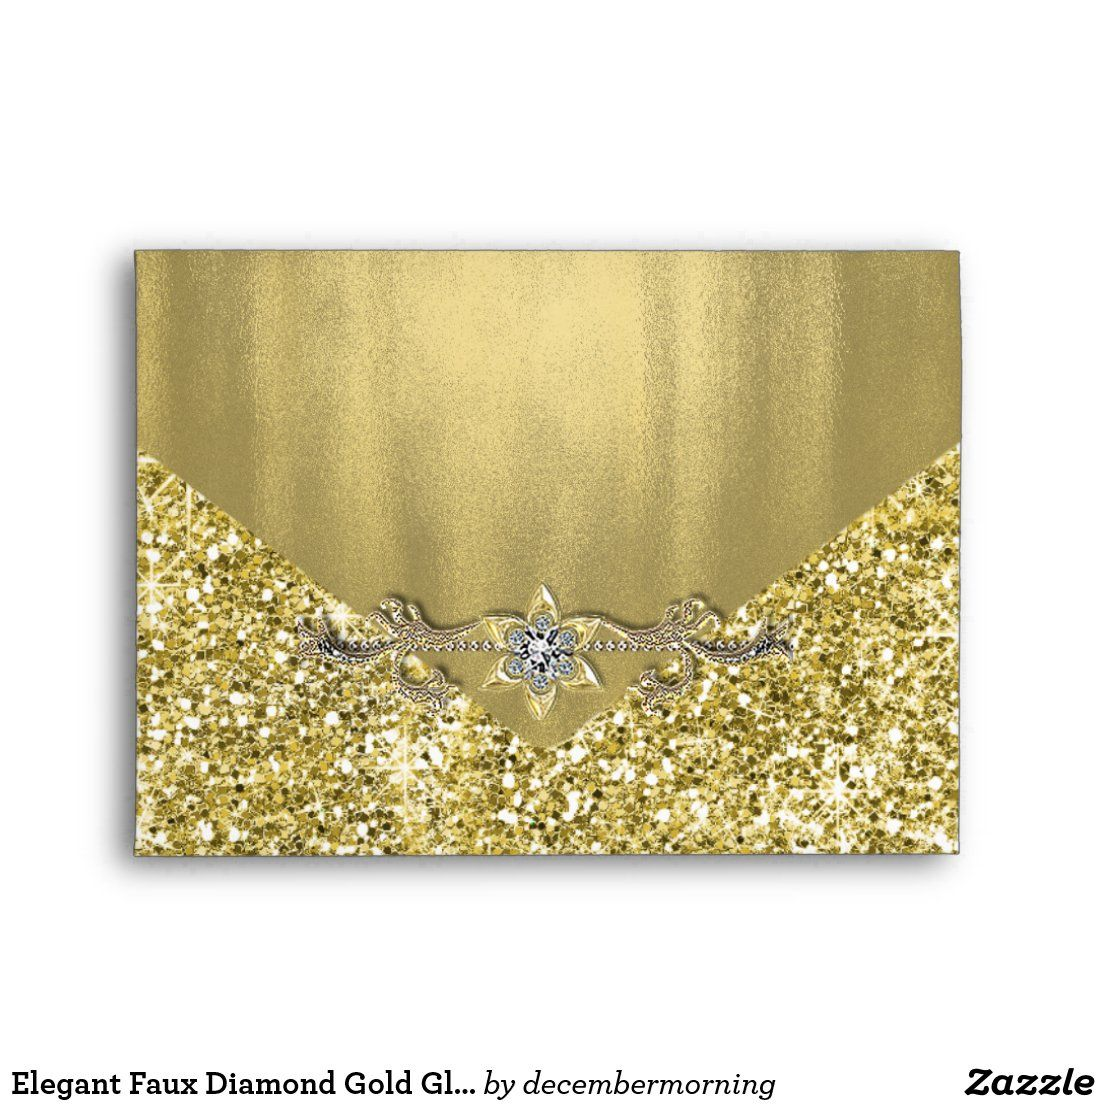 Elegant gold foil invitation and announcement special occasion envelope with beautiful printed diamond jewel gold glitter exterior and printed gold foil interior and flap. You can easily customize this gold card and invitation envelope for your needs. Add your return address to the back flap. This is a printed design with no real foil, glitter, jewels, etc.